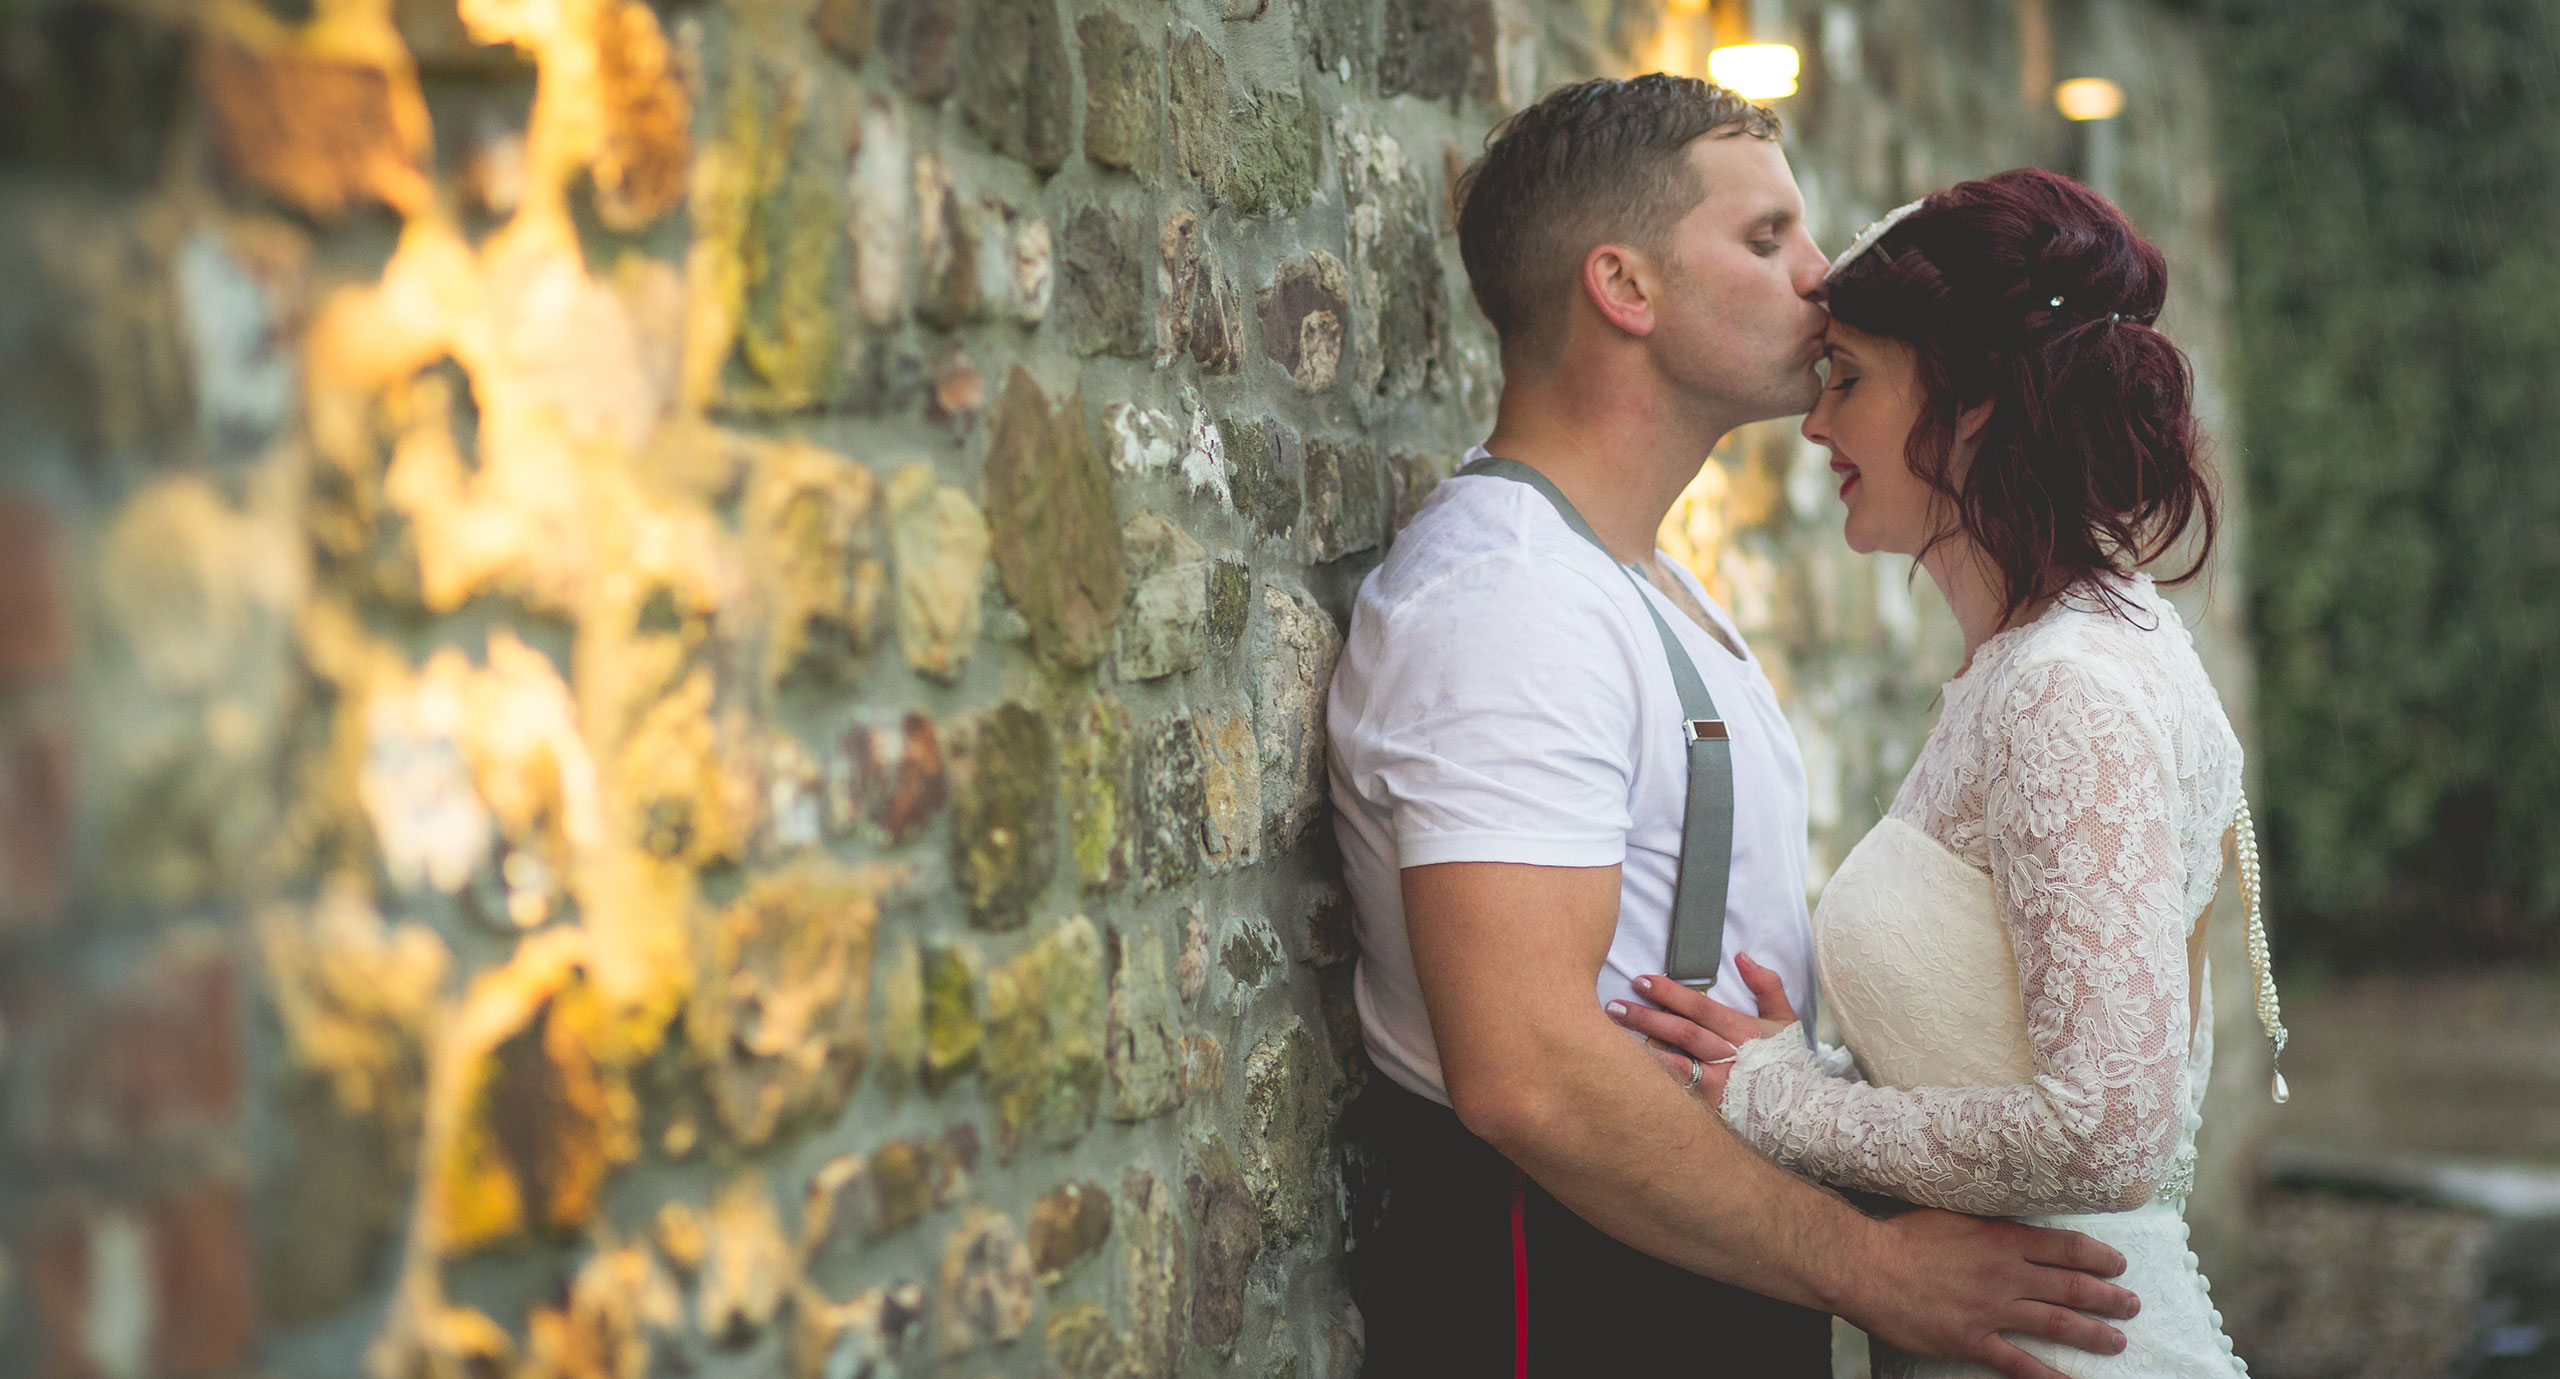 Vintage wedding photography South Wales